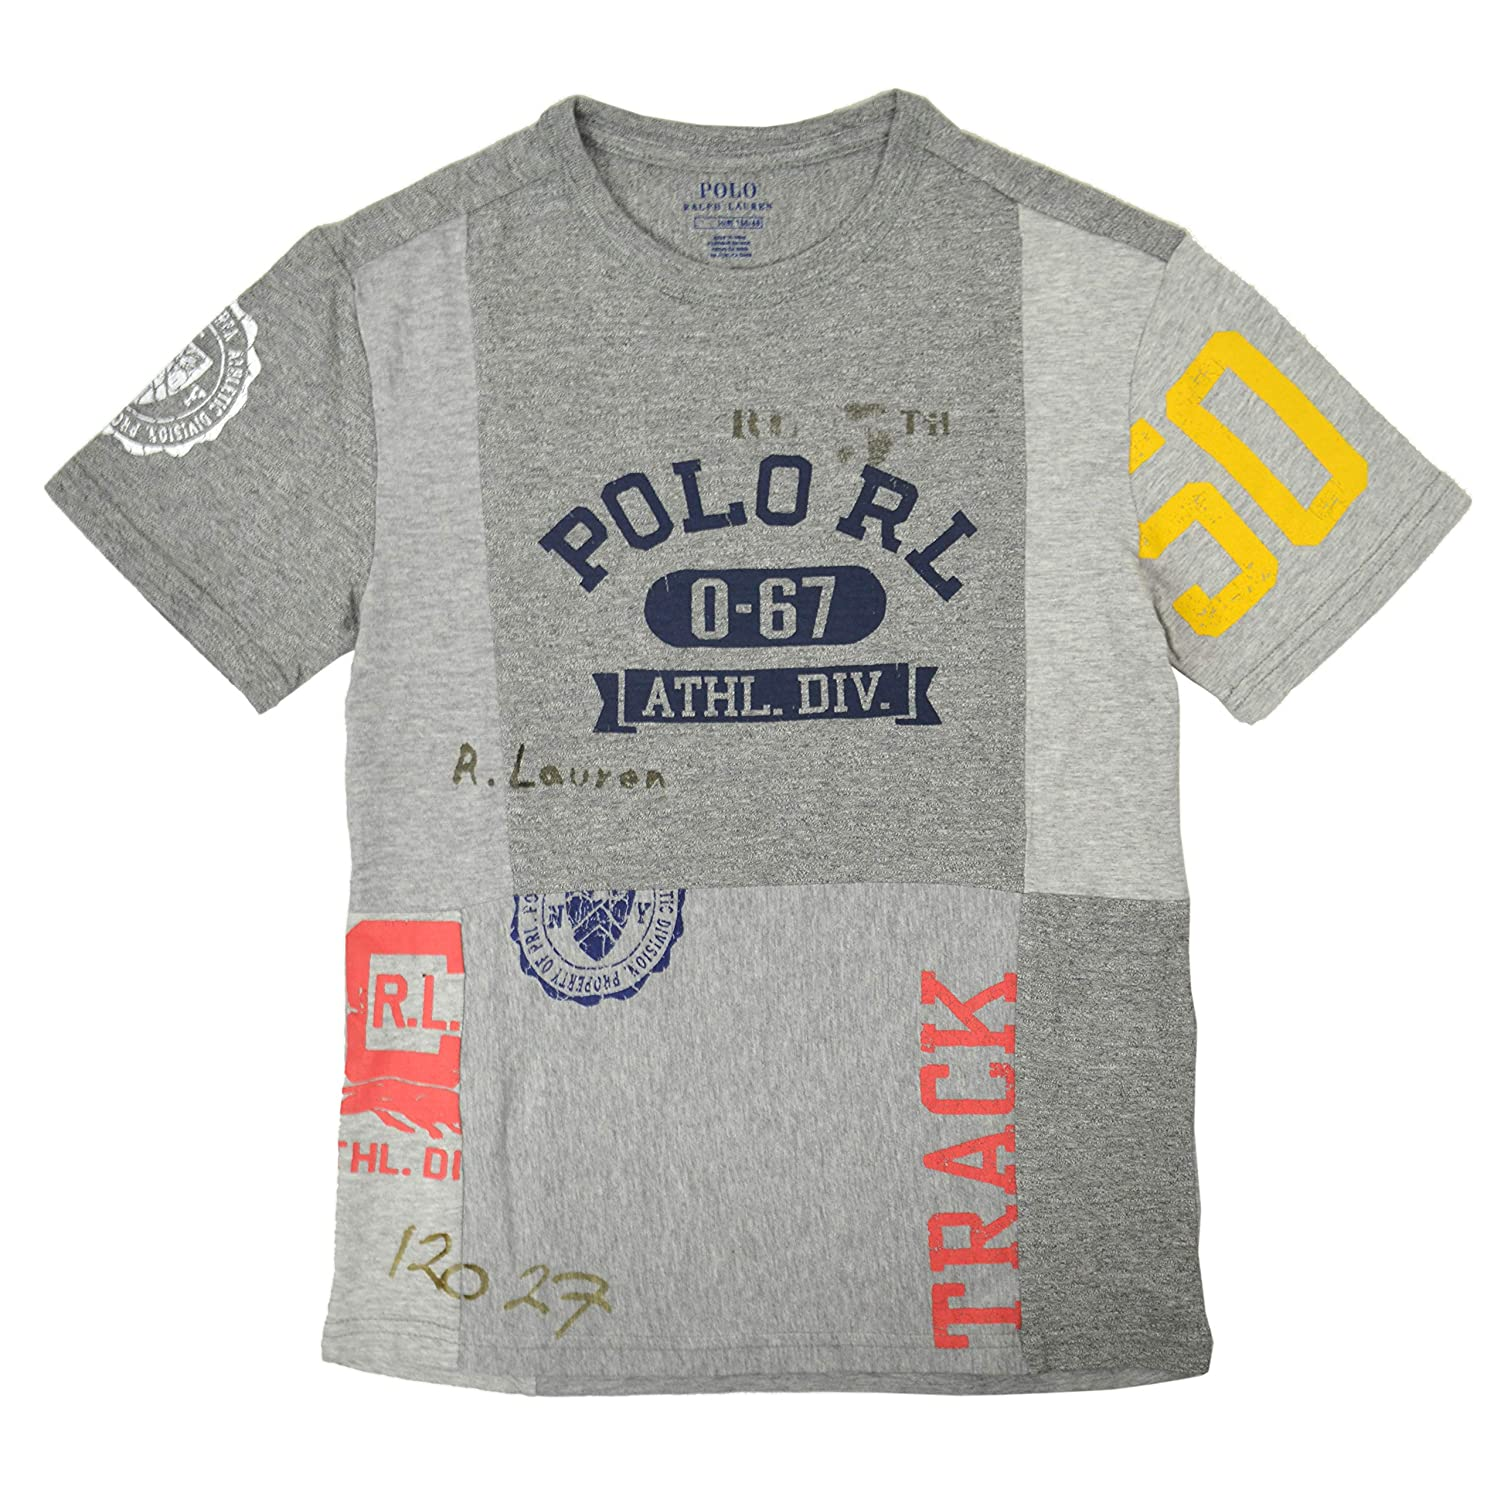 6bbbca299 Amazon.com: Polo Ralph Lauren Toddler Boys Athletic Division Patchwork Tee  T-Shirt Heather Grey: Clothing